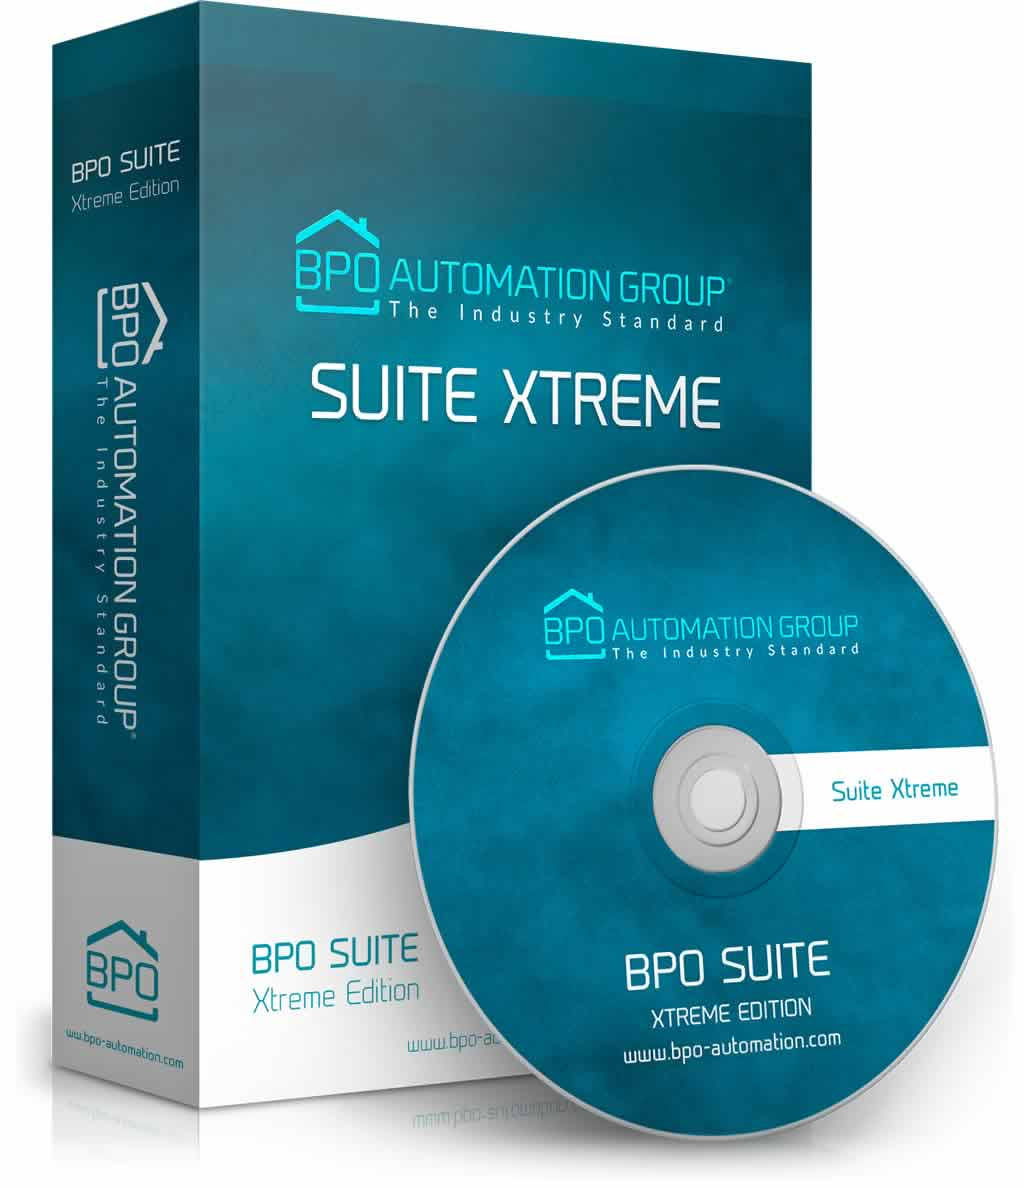 BPO Automation Software - Automate Broker Price Opinion Forms